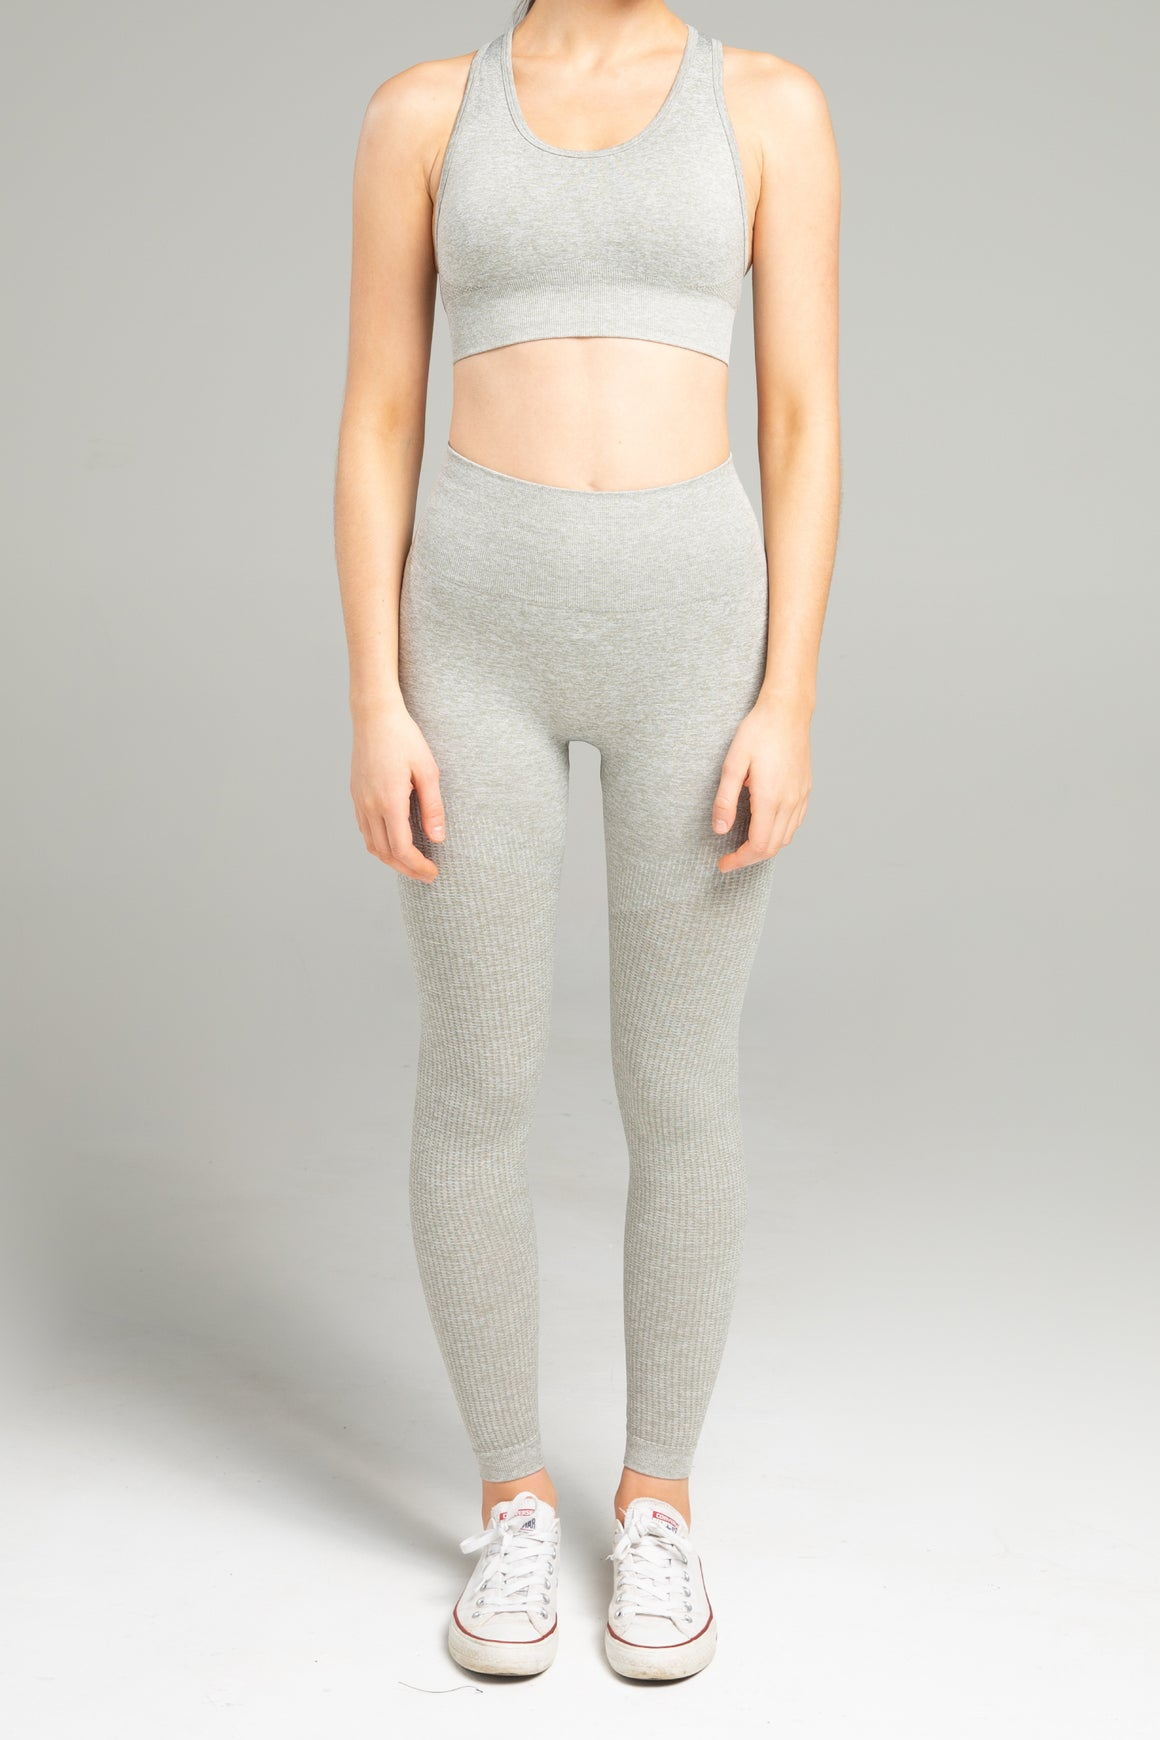 Power Seamless Leggings - Light Grey